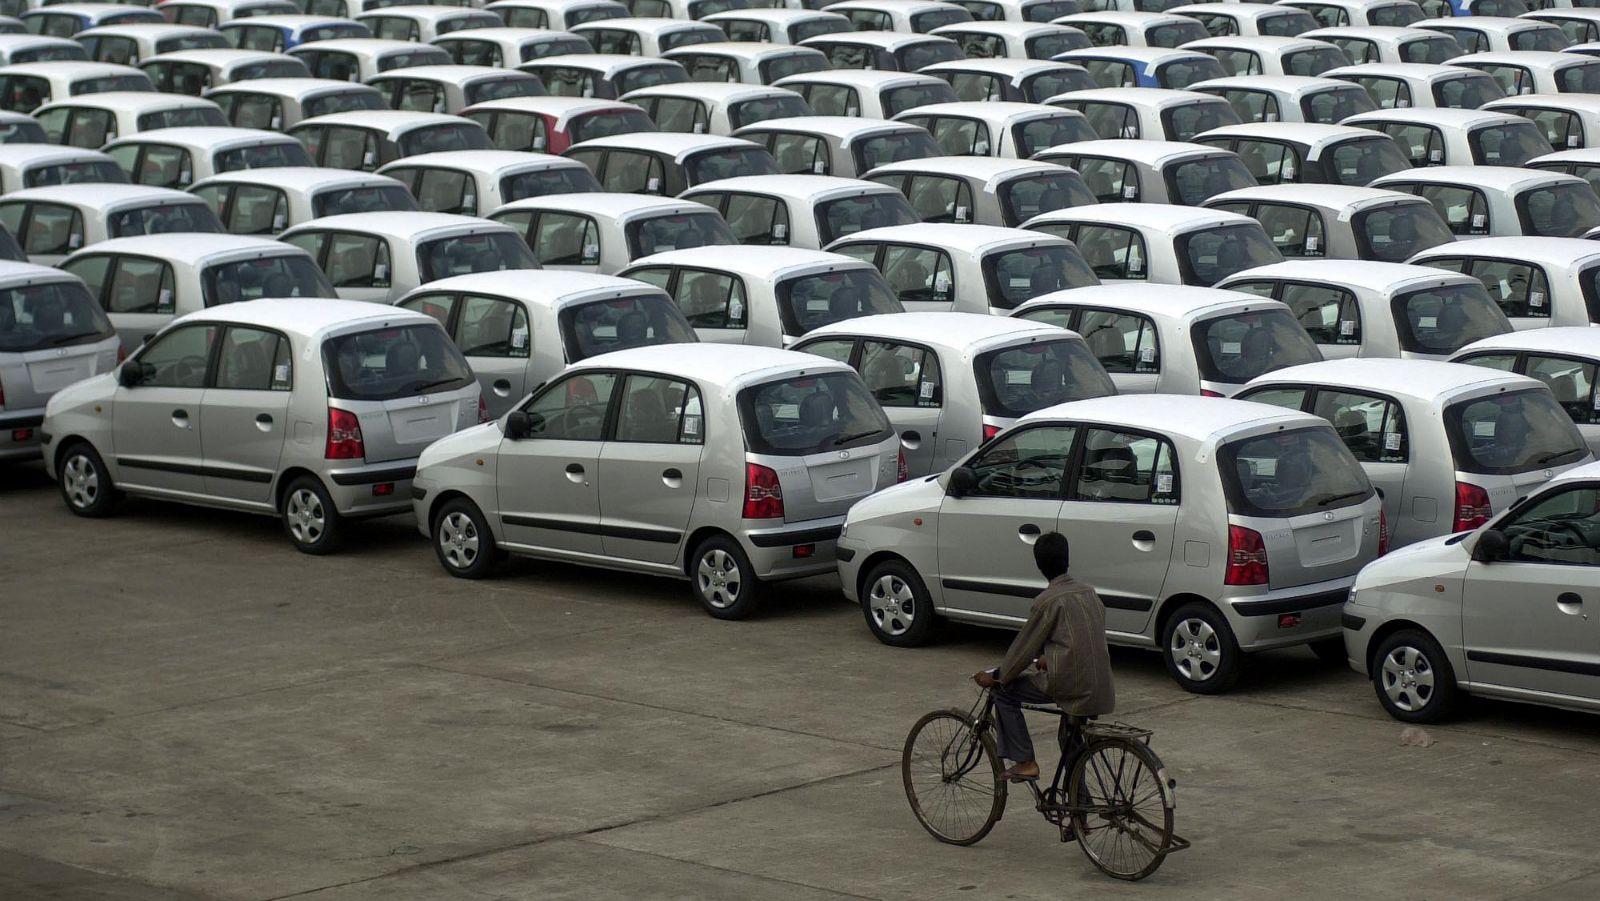 A cyclist goes past Hyundai cars parked at the port in Madras, India, Thursday, March 10, 2005. Hyundai Motor India, which exported nearly 30,000 vehicles in 2004, has targeted shipment of 70,000 cars by 2005. Hyundai India exported cars to Latin America, North Africa, South East Asia, North America and Europe.